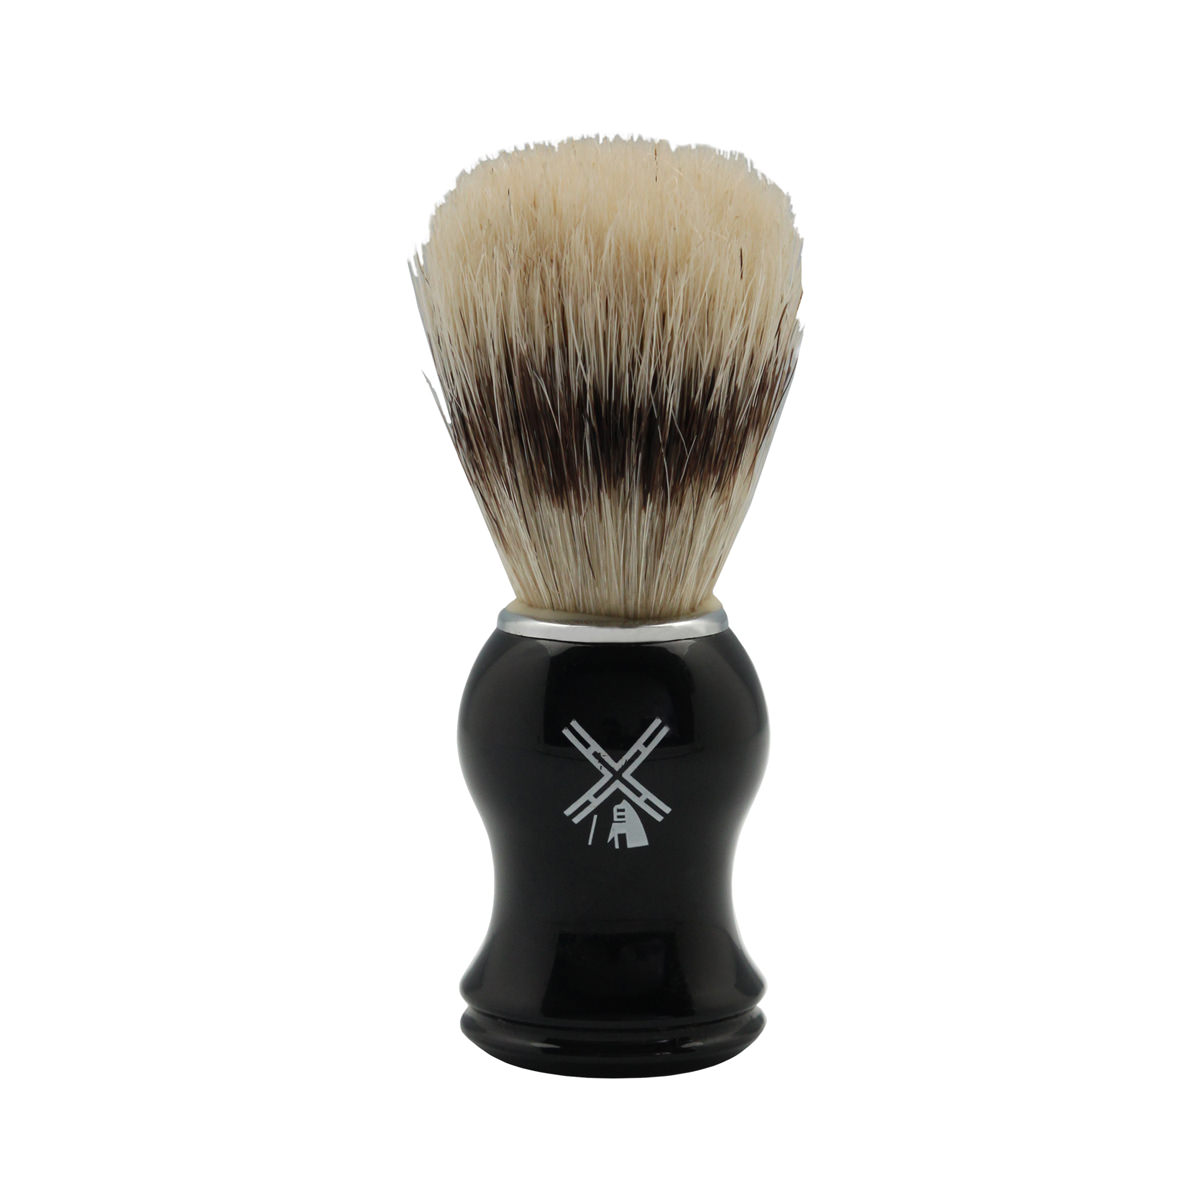 Shaving-Brush-MM-M13193-high-sfw(1)